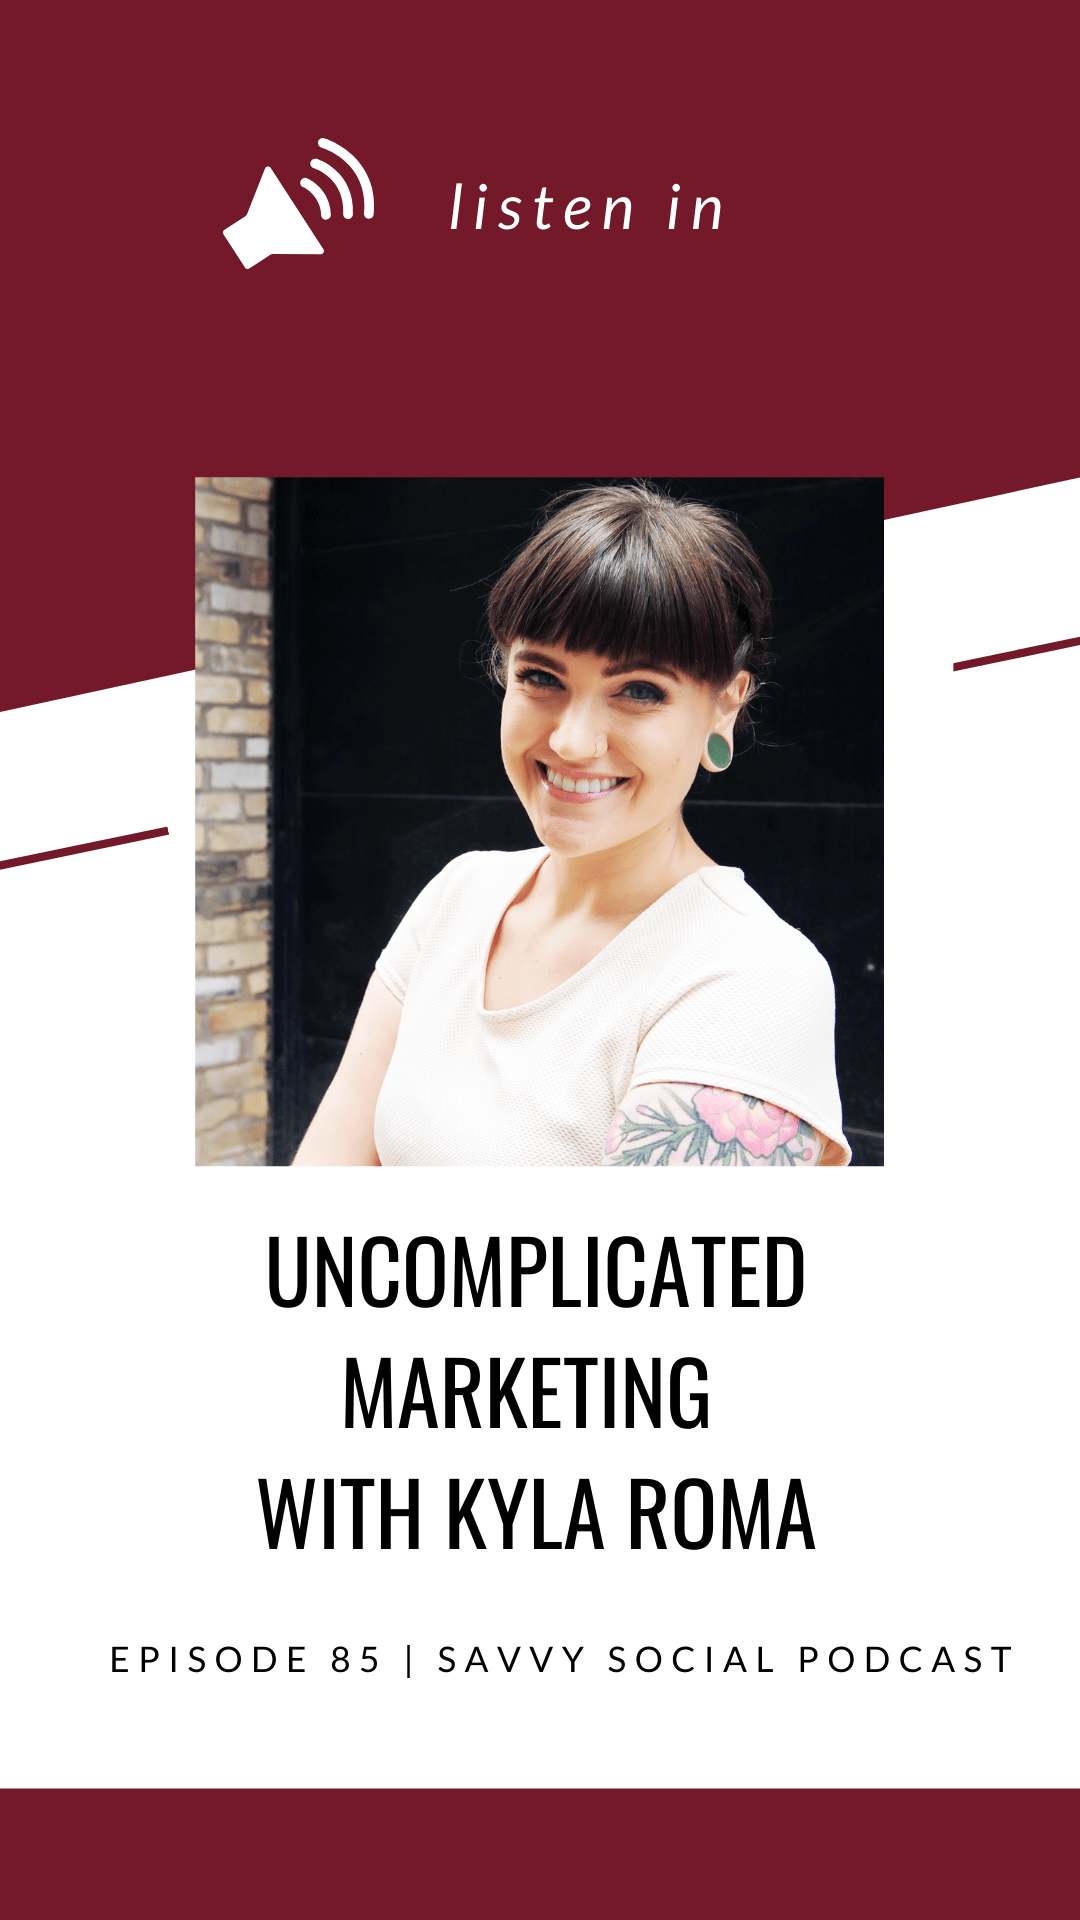 Ever feel like your marketing strategy just isn't getting the results you want? Learn how to prioritize marketing in a way that allows you to show up ready and excited to engage with clients instead of overwhelmed and over it.   Kyla Roma shares how to identify your marketing success metrics, where to start when building your marketing plan, how to share stories as part of your marketing messaging and so much more!